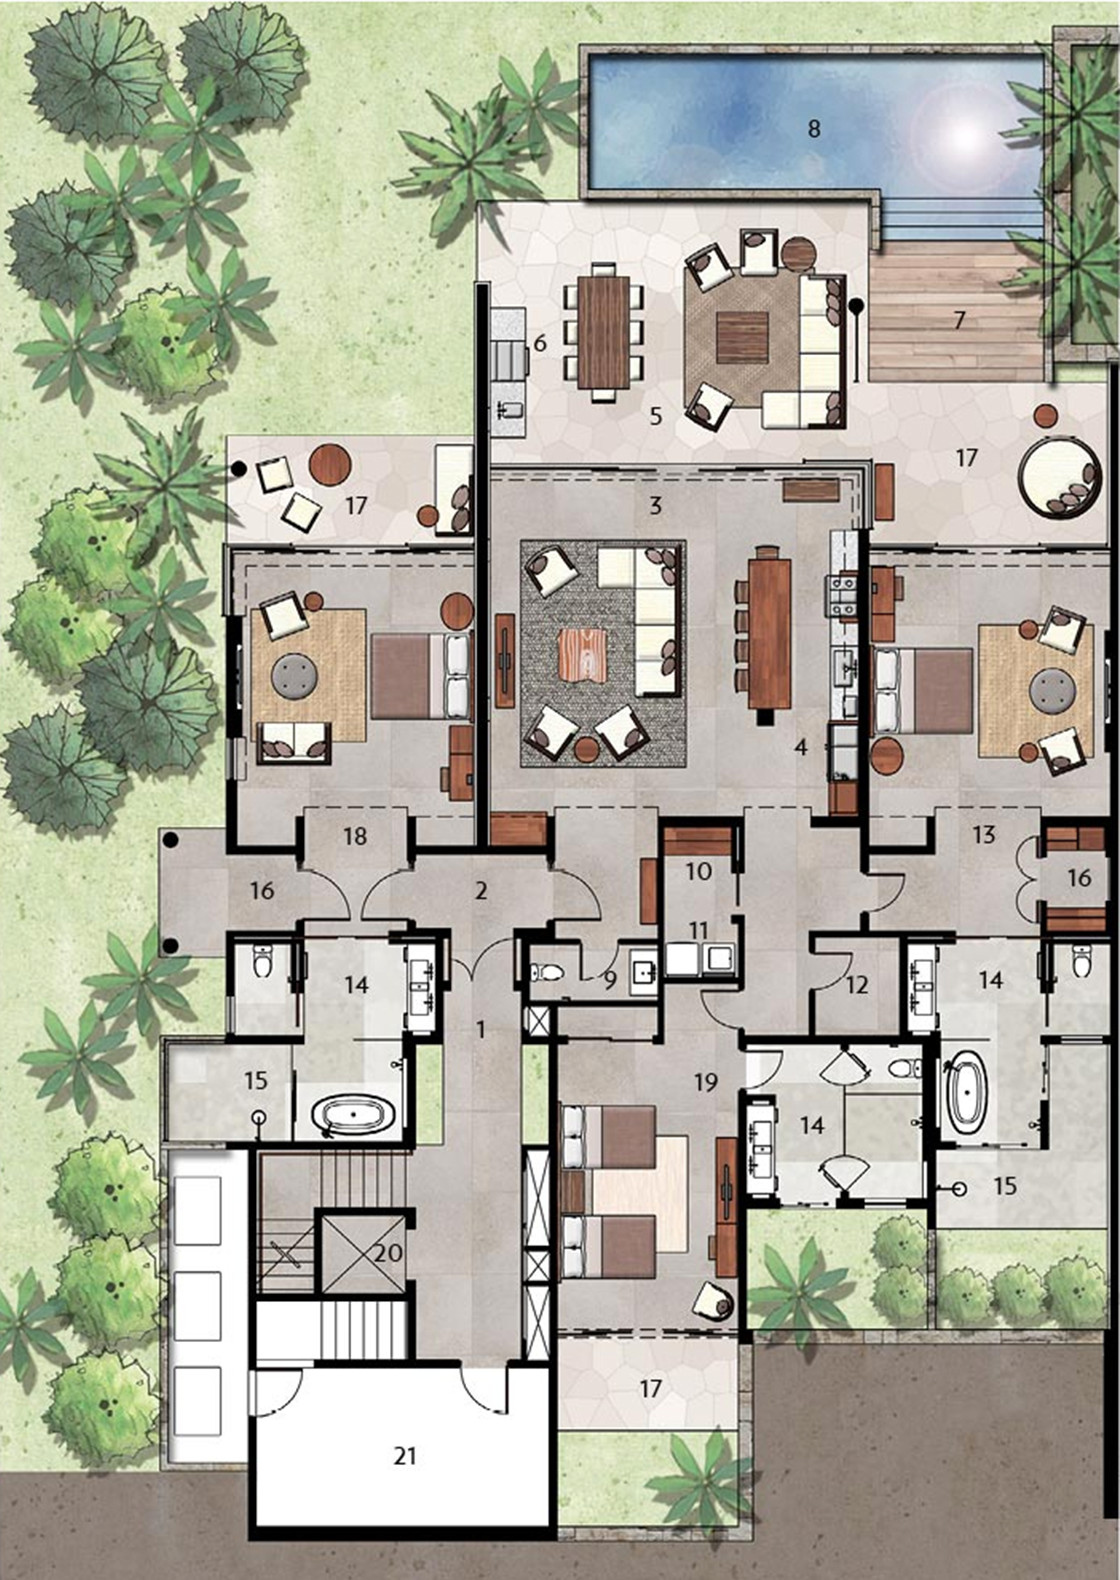 Los cabos luxury villas floor plans chileno bay resort for Plans de villa